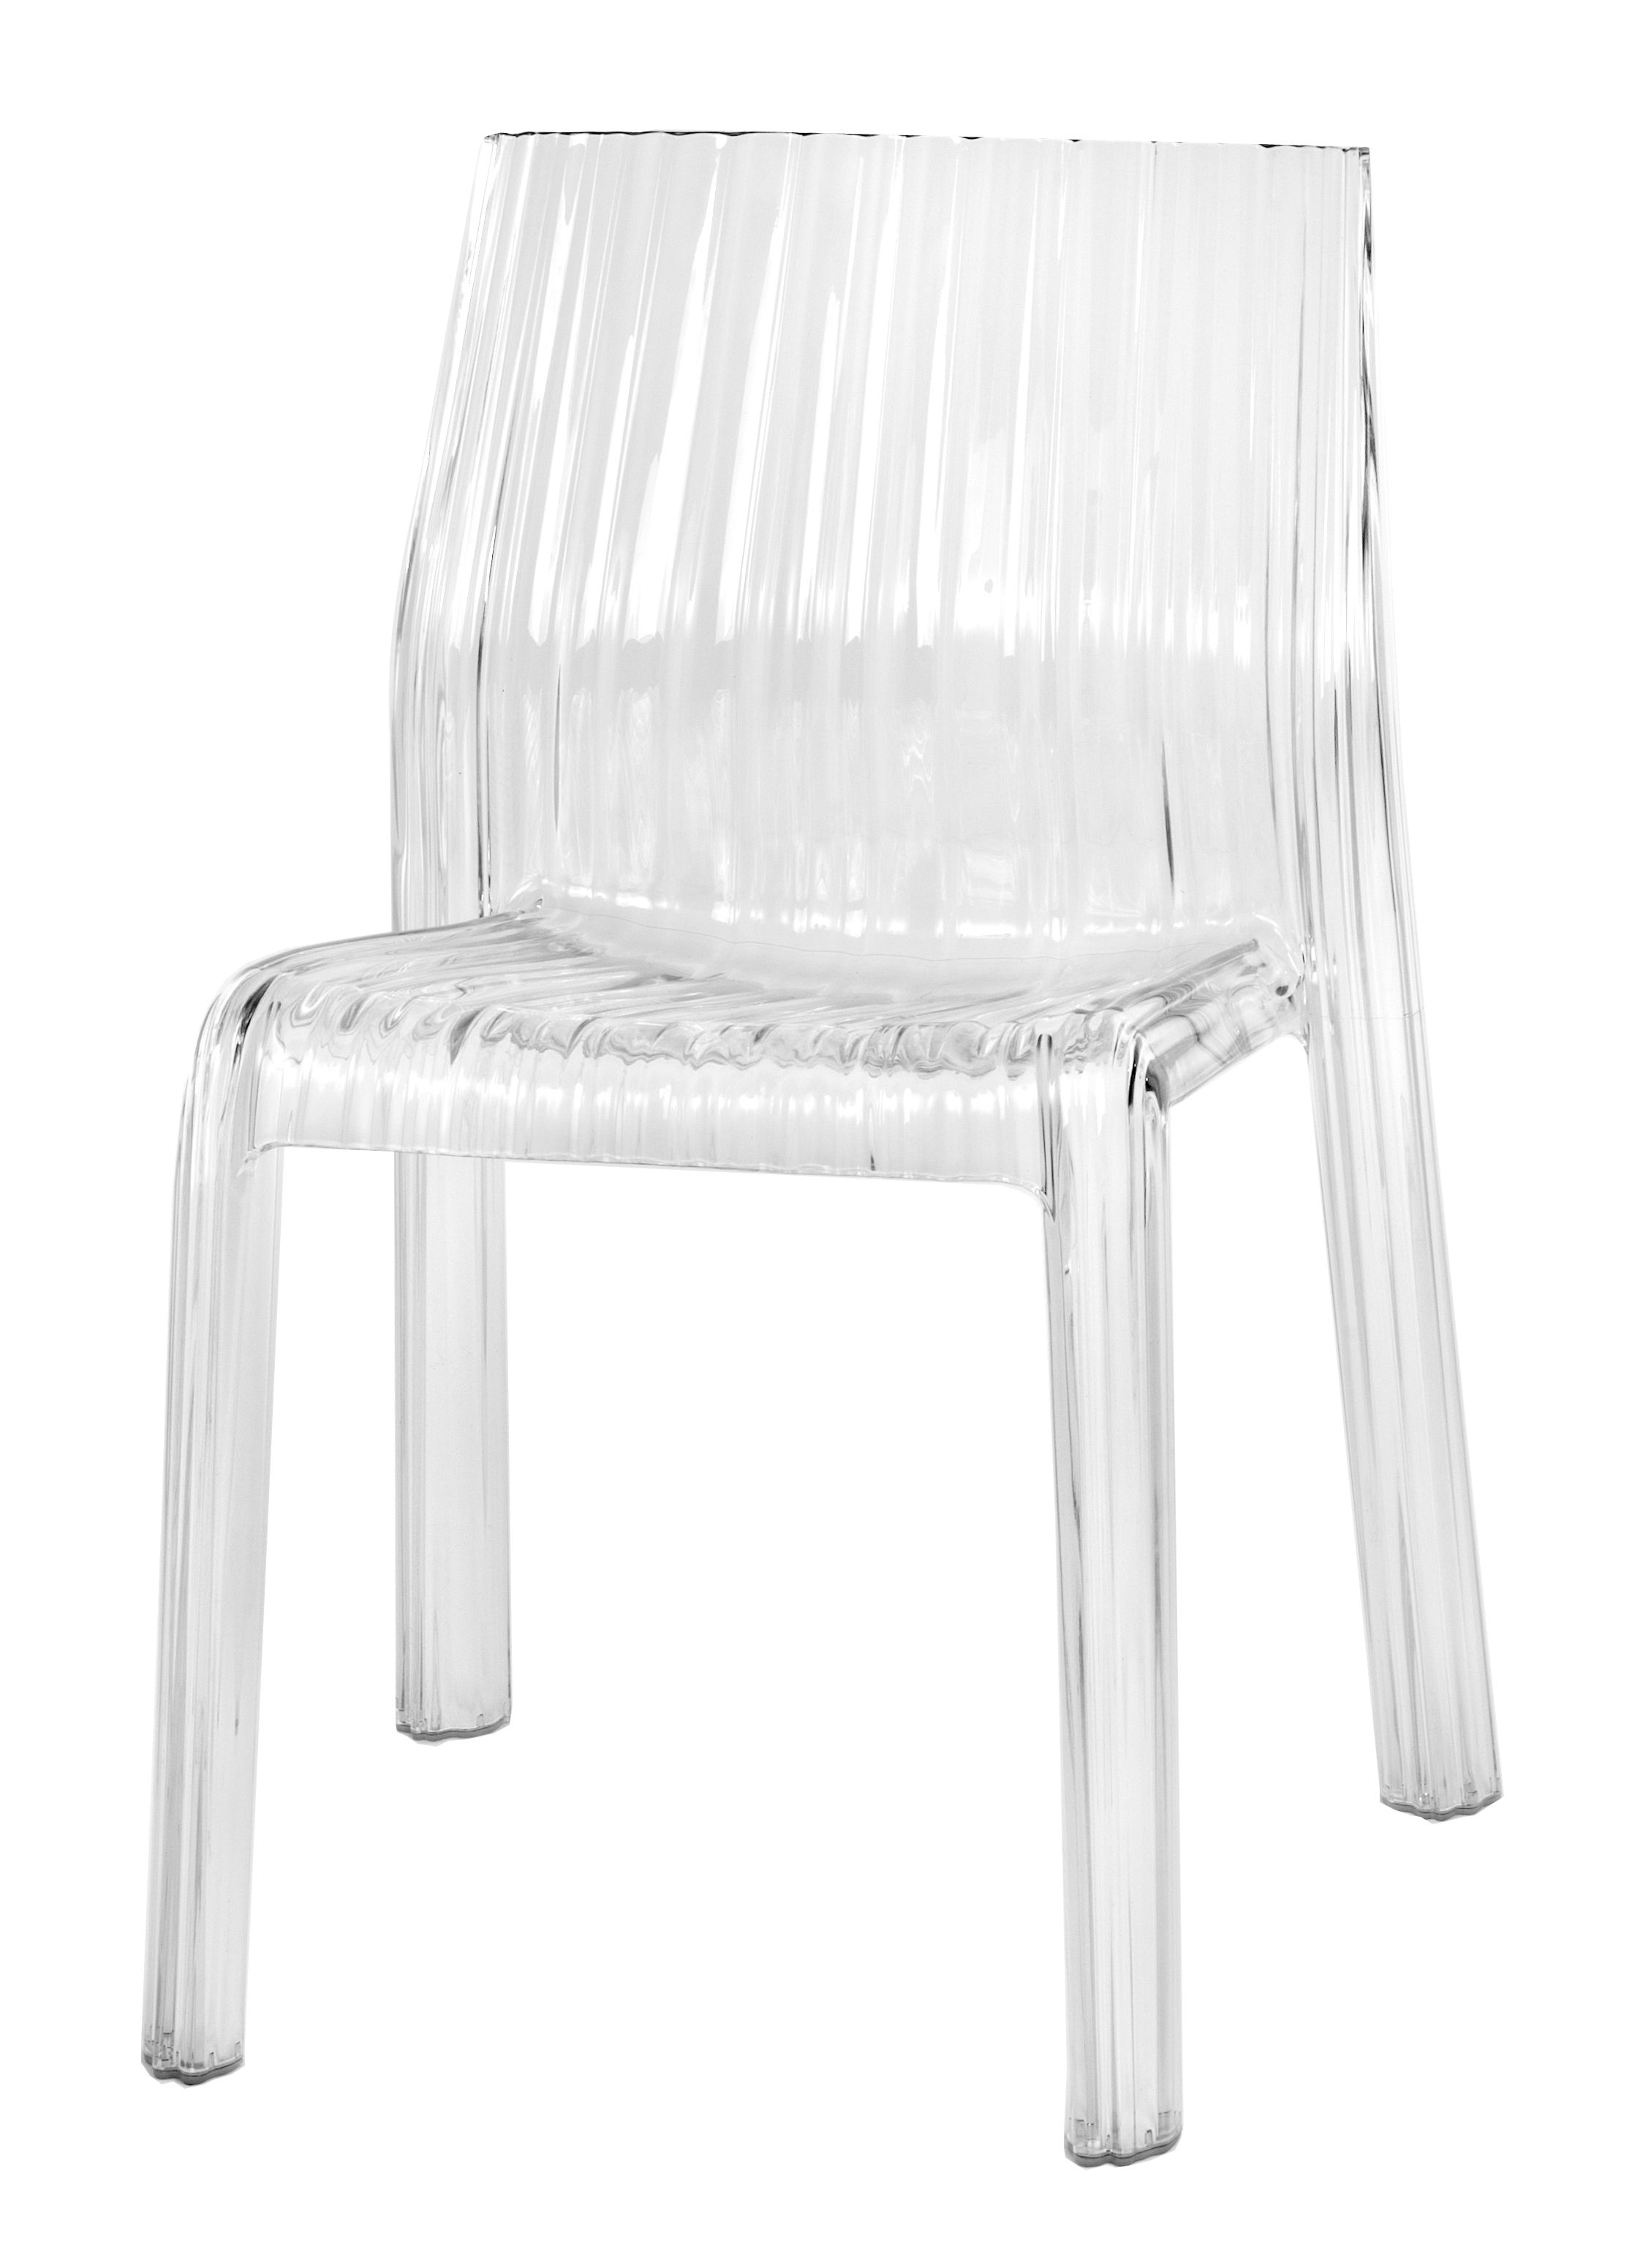 Chaise Cristal Chaise Empilable Frilly Transparente Polycarbonate Kartell